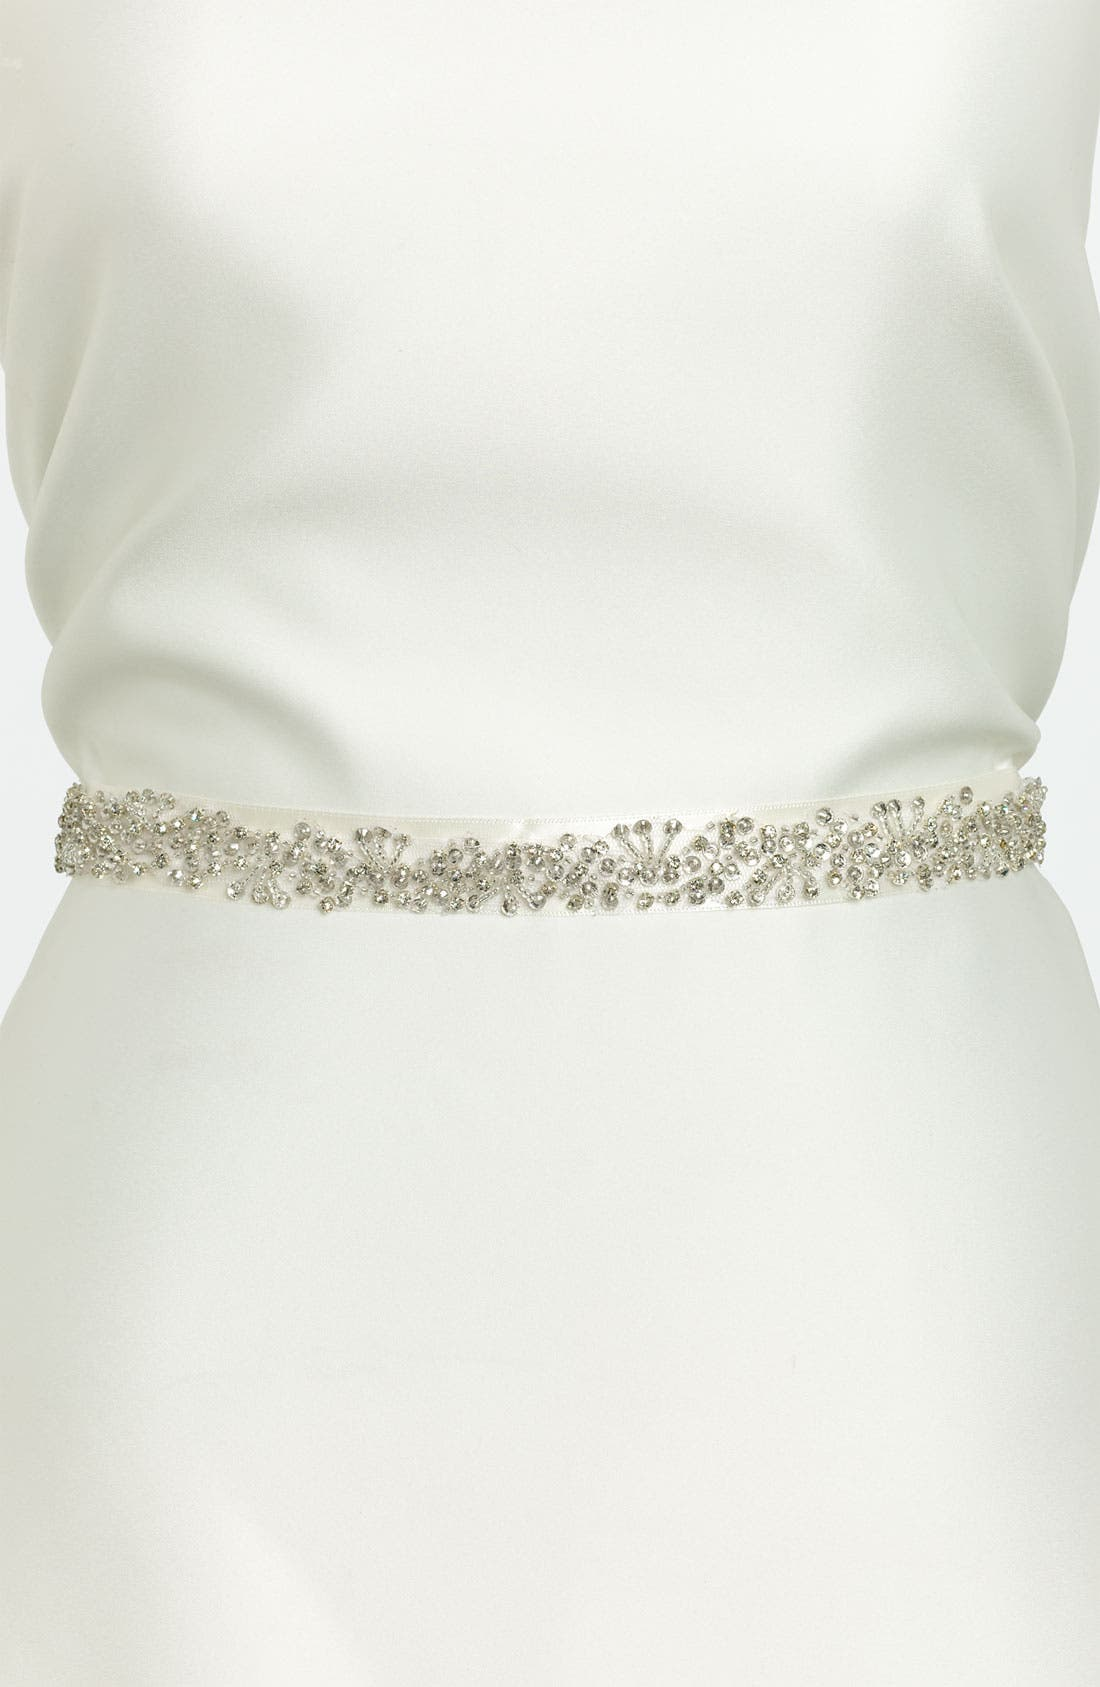 Alternate Image 1 Selected - Nina Ornate Beaded Sash